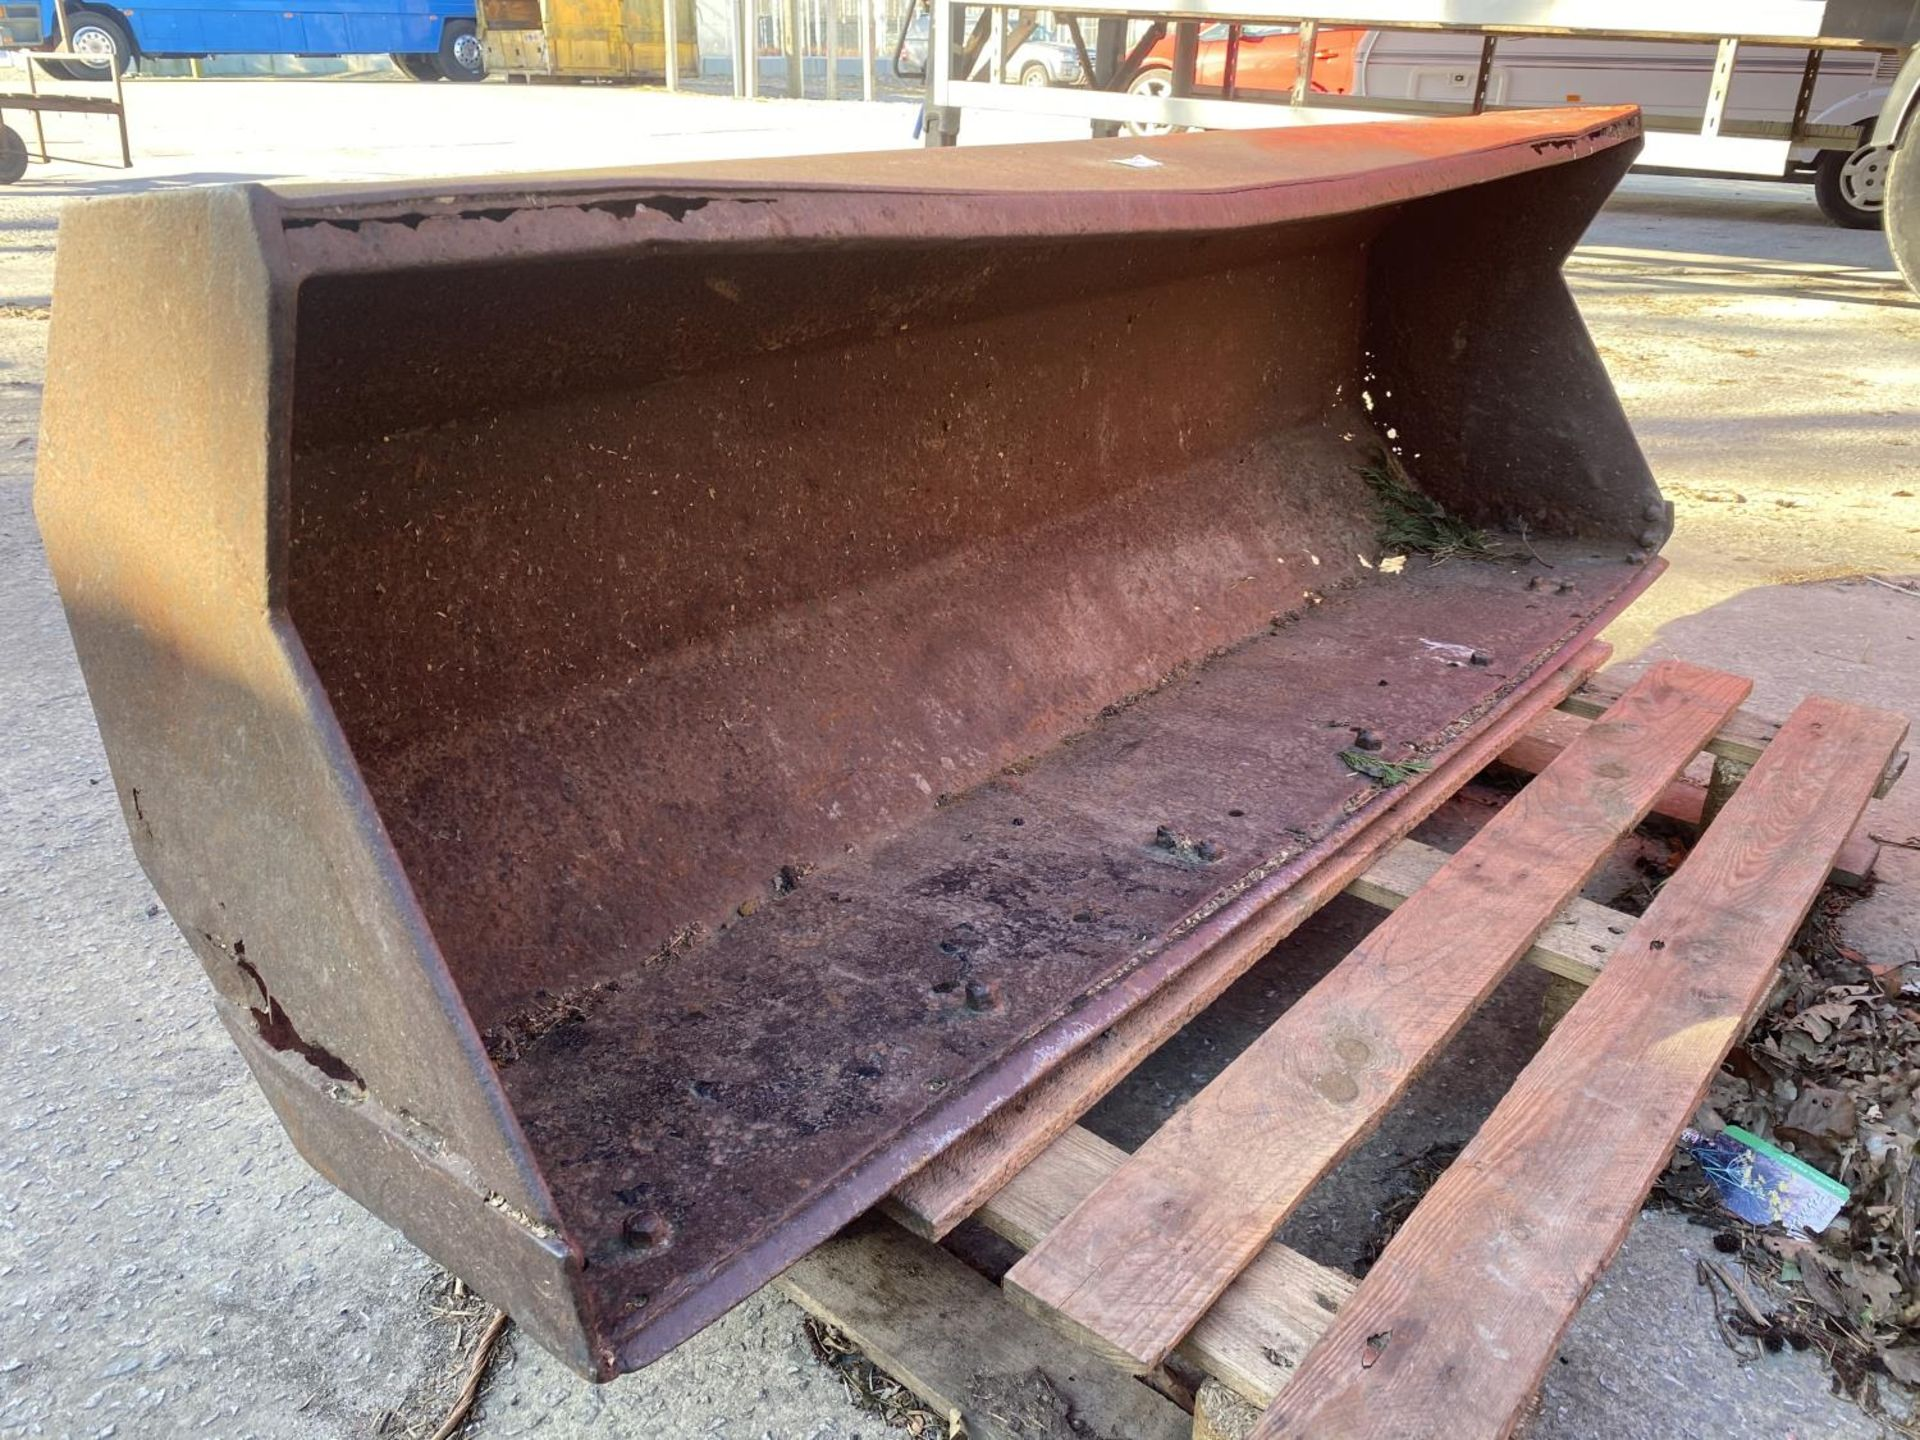 A FORE END LOADER BUCKET (FITS LOT 50) - Image 5 of 5